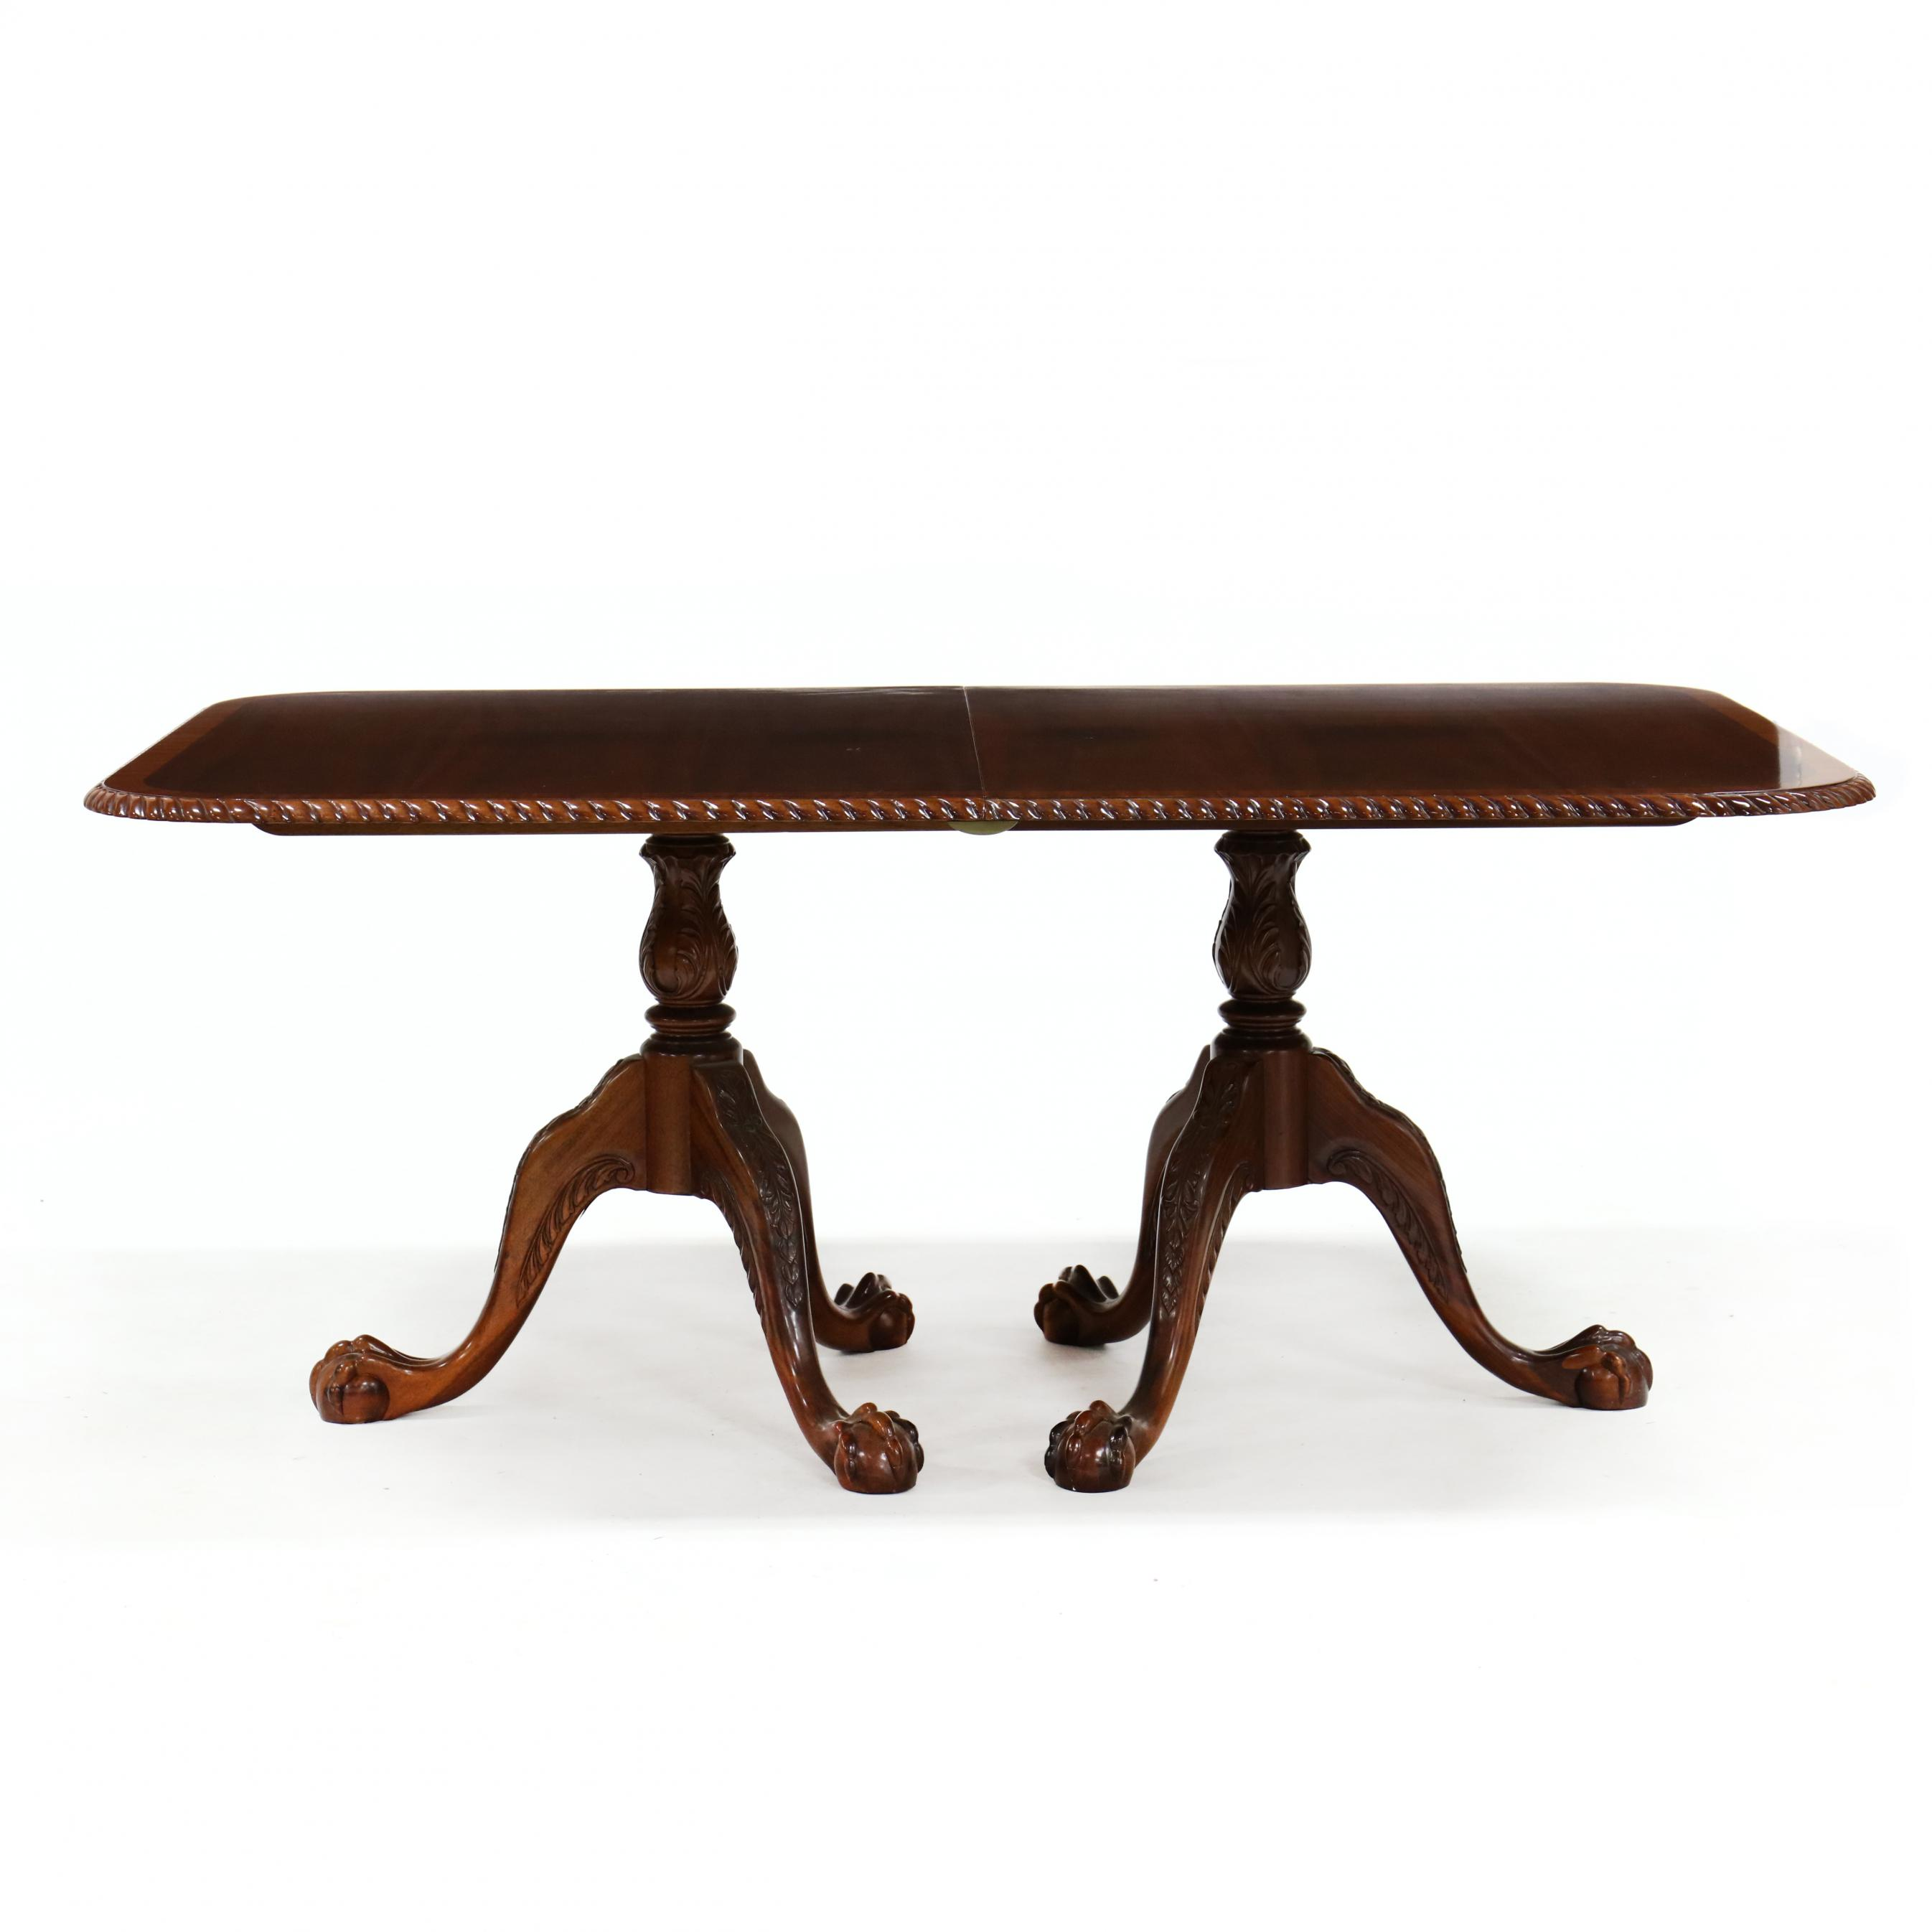 georgian-style-carved-and-banded-mahogany-dining-table